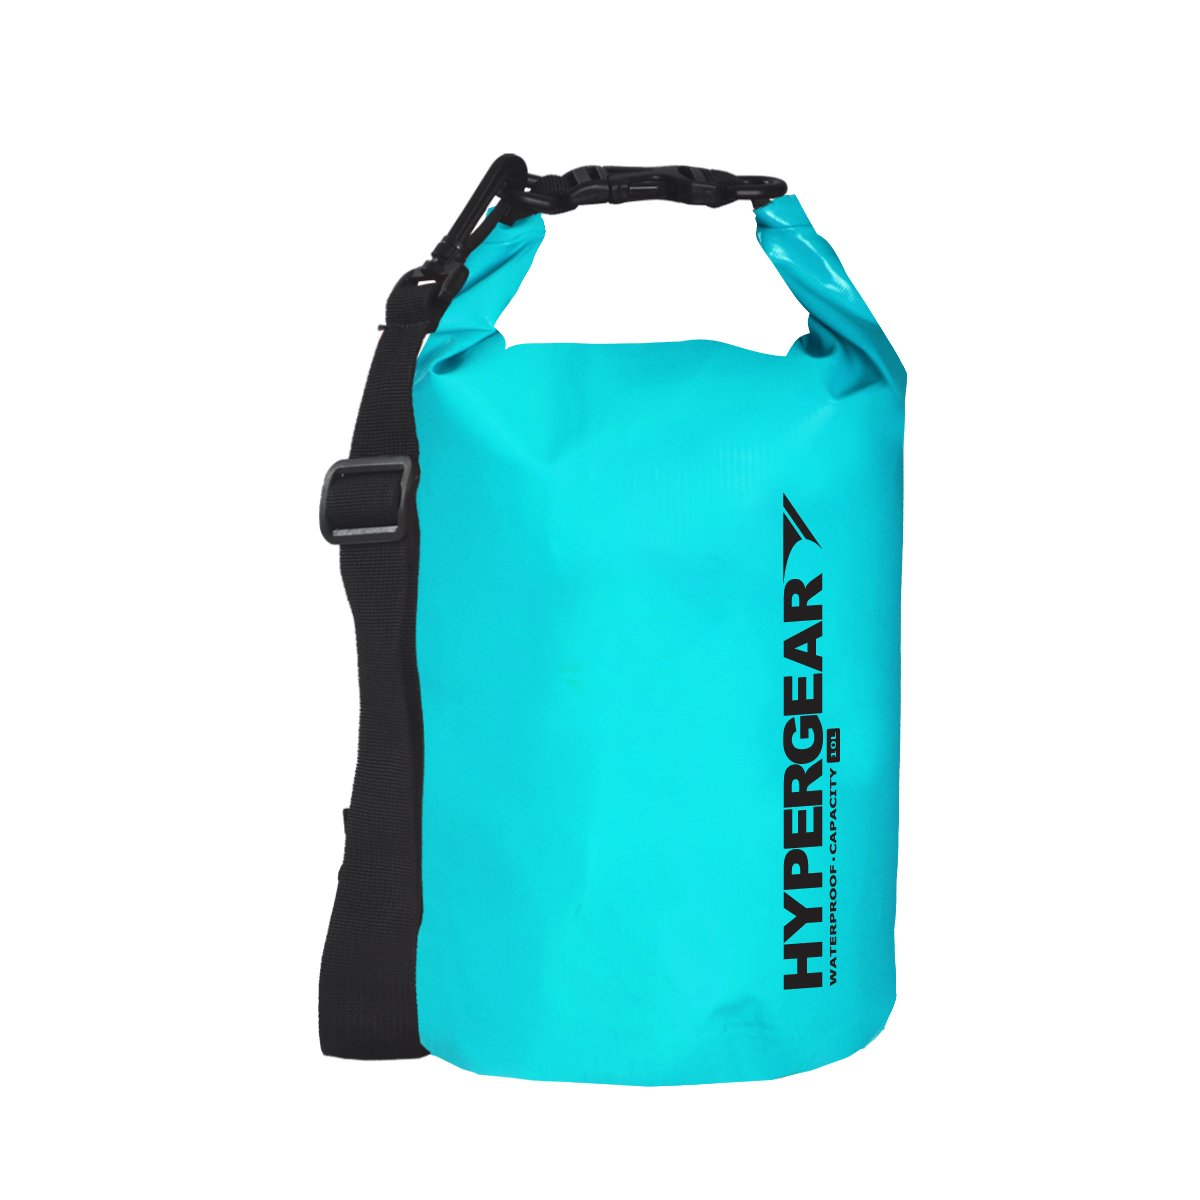 Hypergear Dry Bag 5L 1 Year Warranty (Ready Stock ‎)